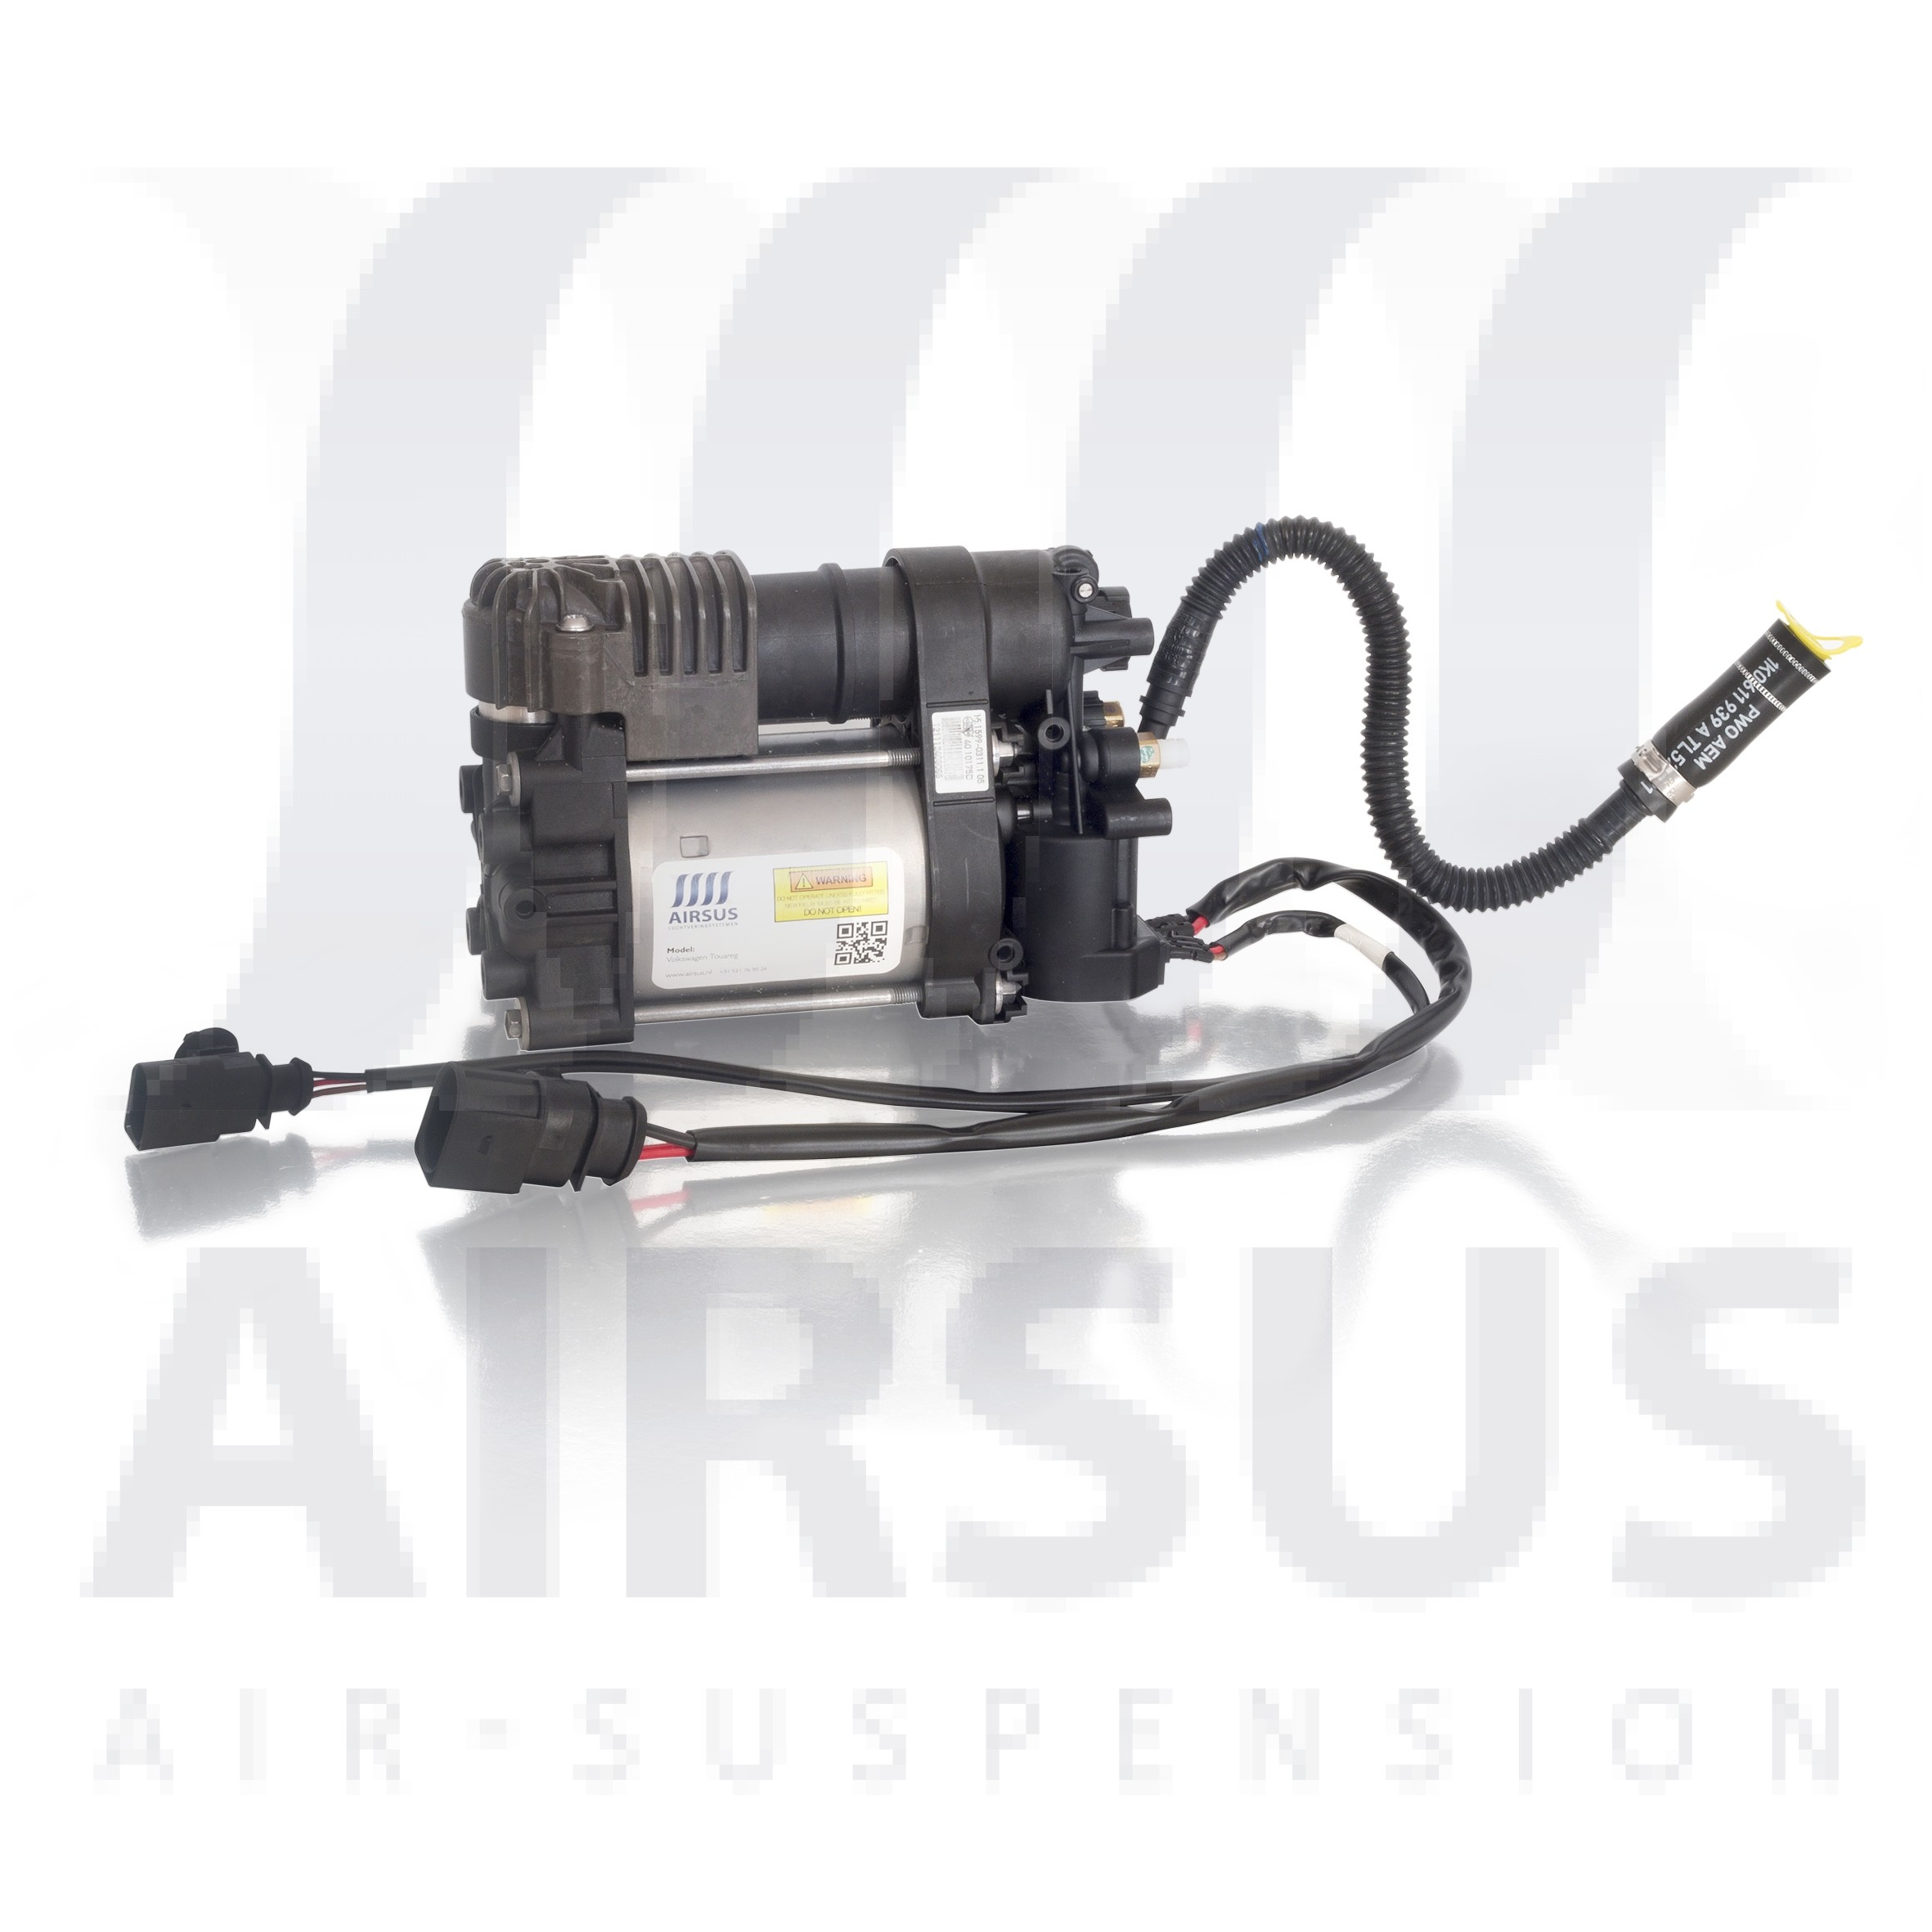 Volvo XC90 Turbo Airsuspension Compressor | 31441864